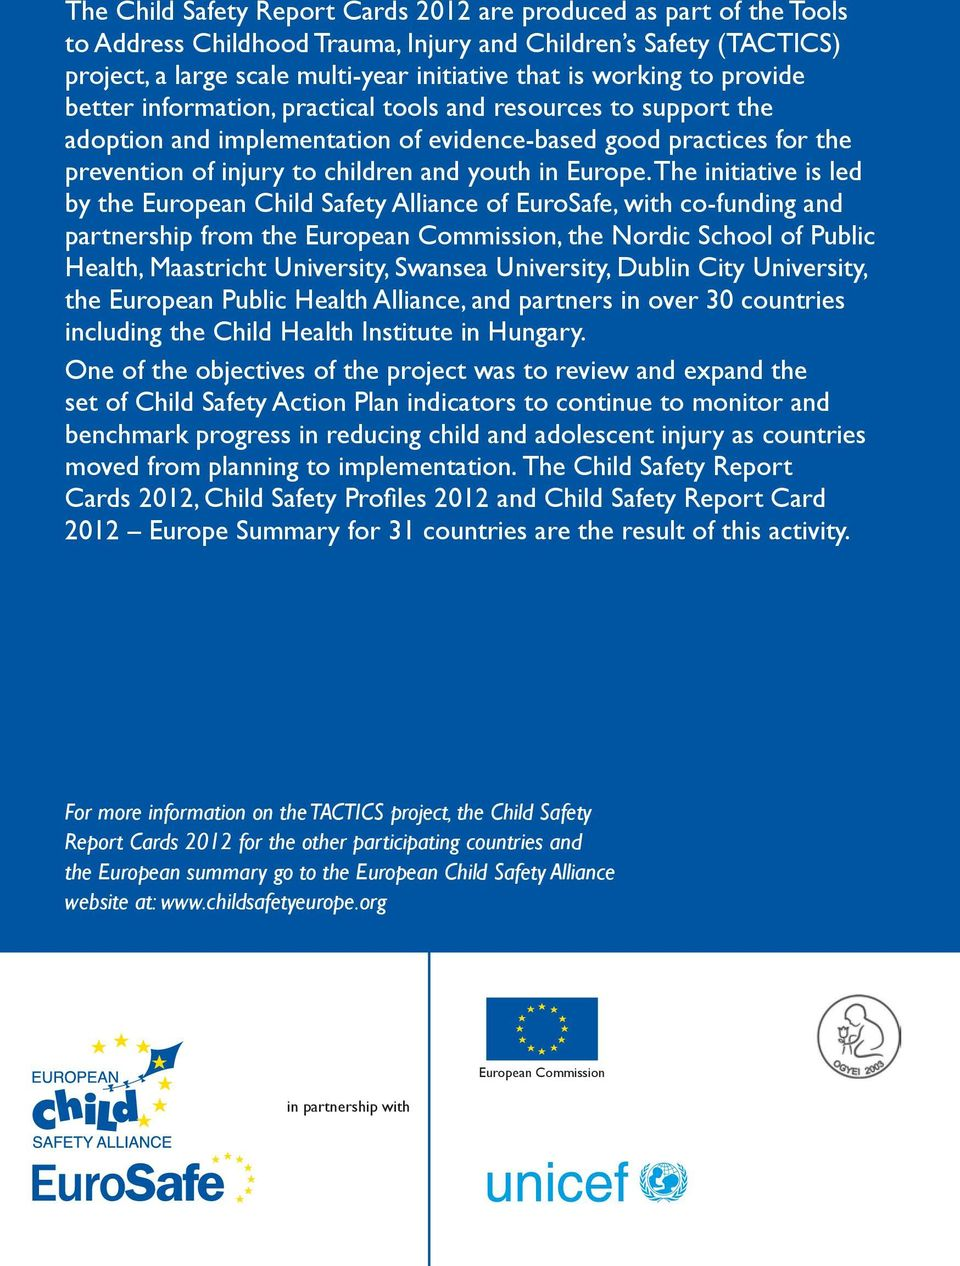 The initiative is led by the European Child Safety Alliance of EuroSafe, with co-funding and partnership from the European Commission, the Nordic School of Public Health, Maastricht University,